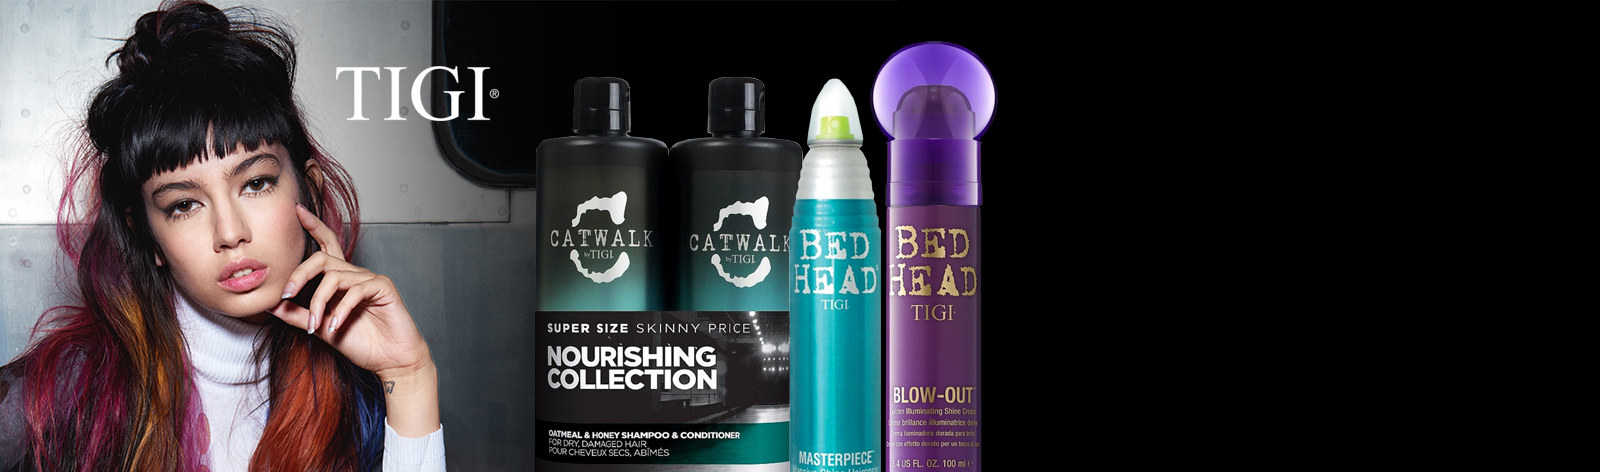 Buy 2 and get 2 free on all TIGI products